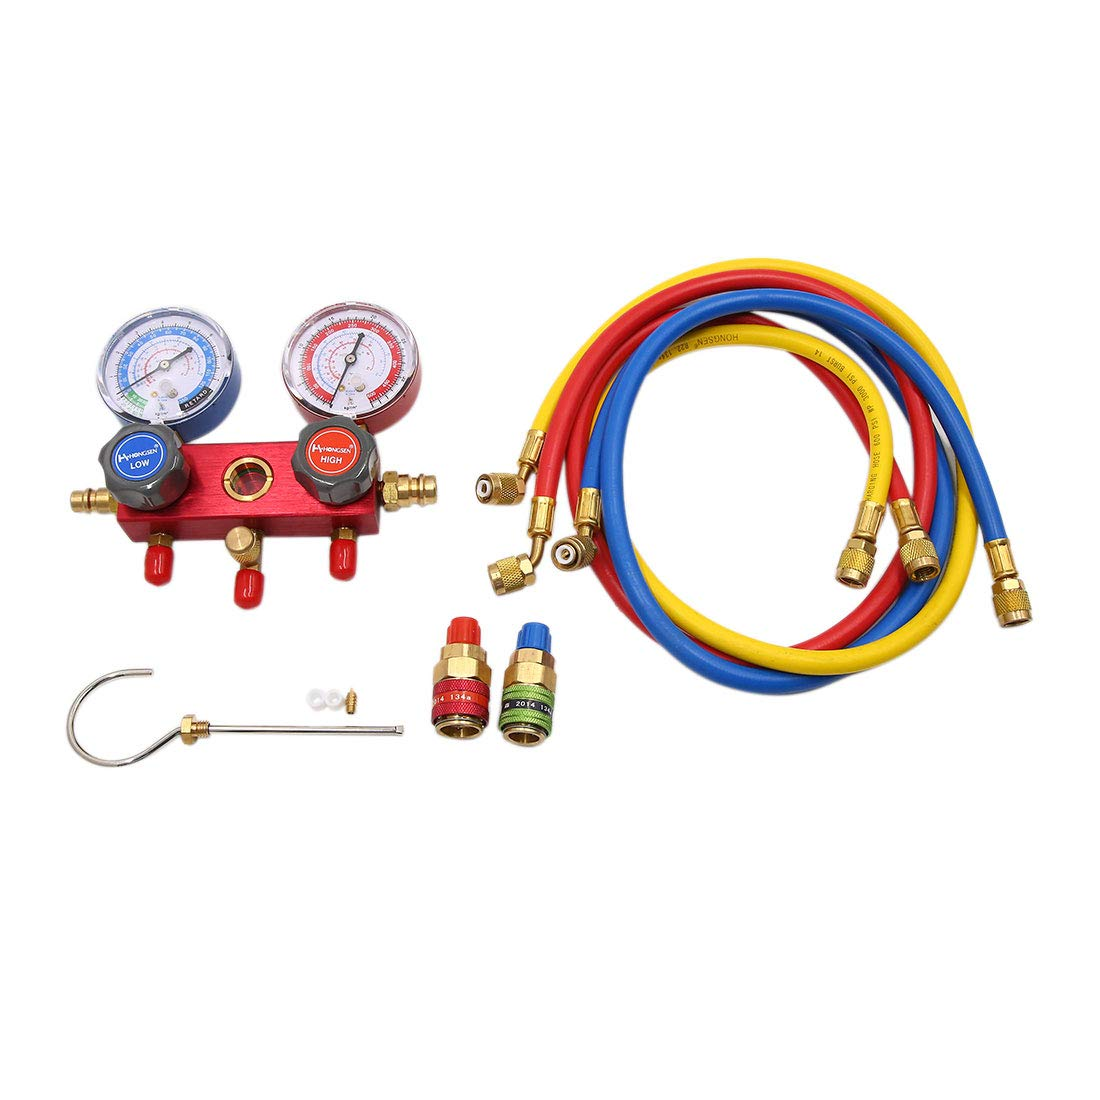 uxcell 3 Valve Manifold Dual Gauge Air Conditioner Pressure Tester Set for Auto Car